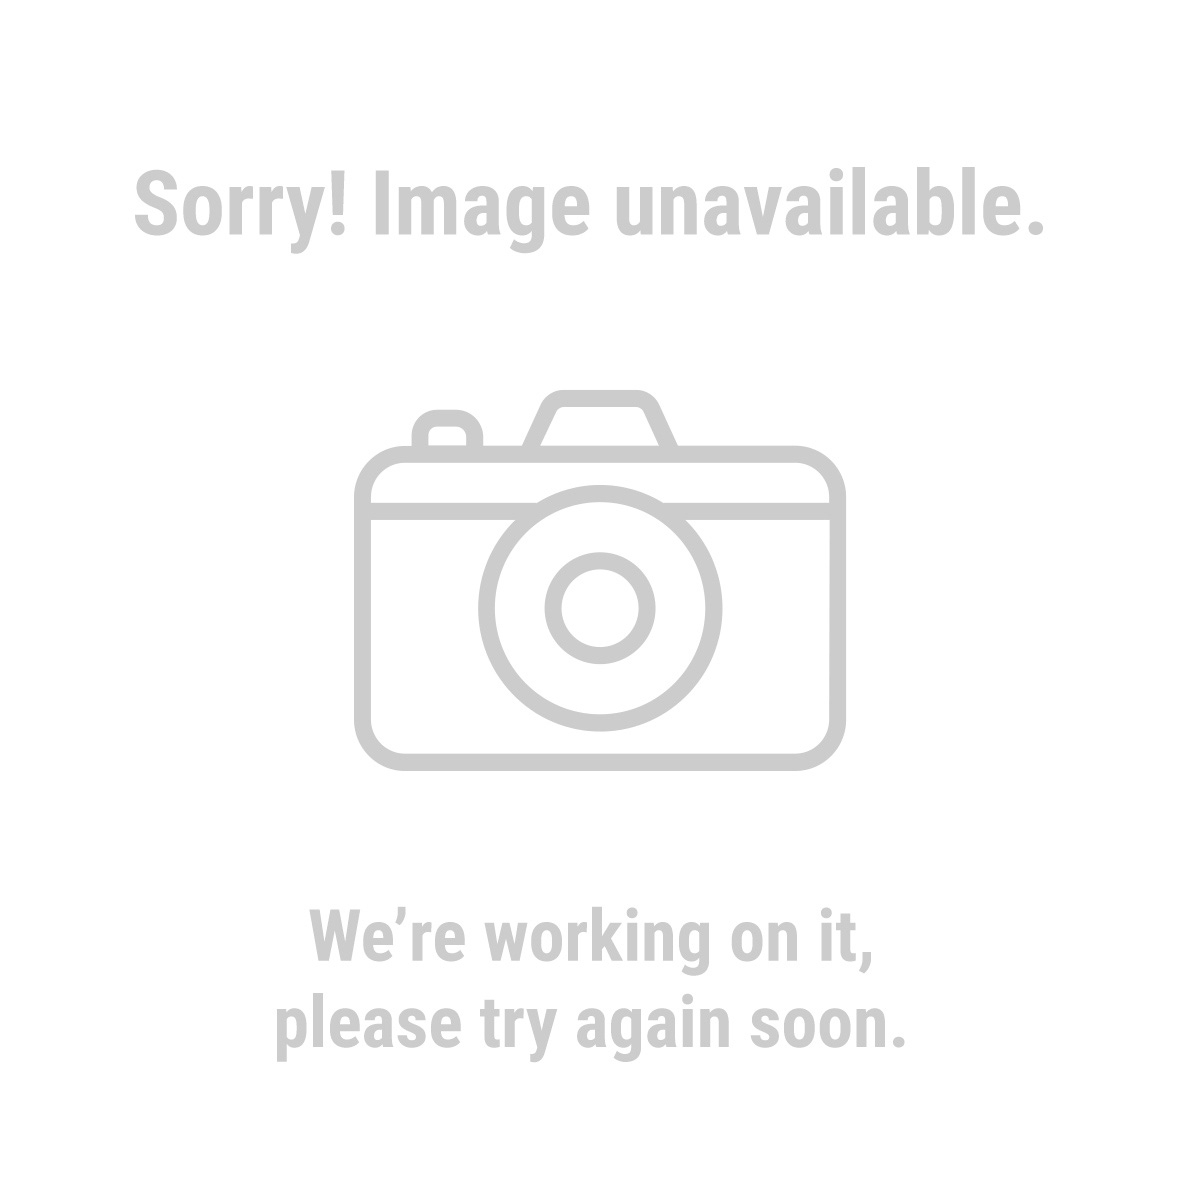 Chicago Electric 39343 150 Ft. Extension Cord Reel